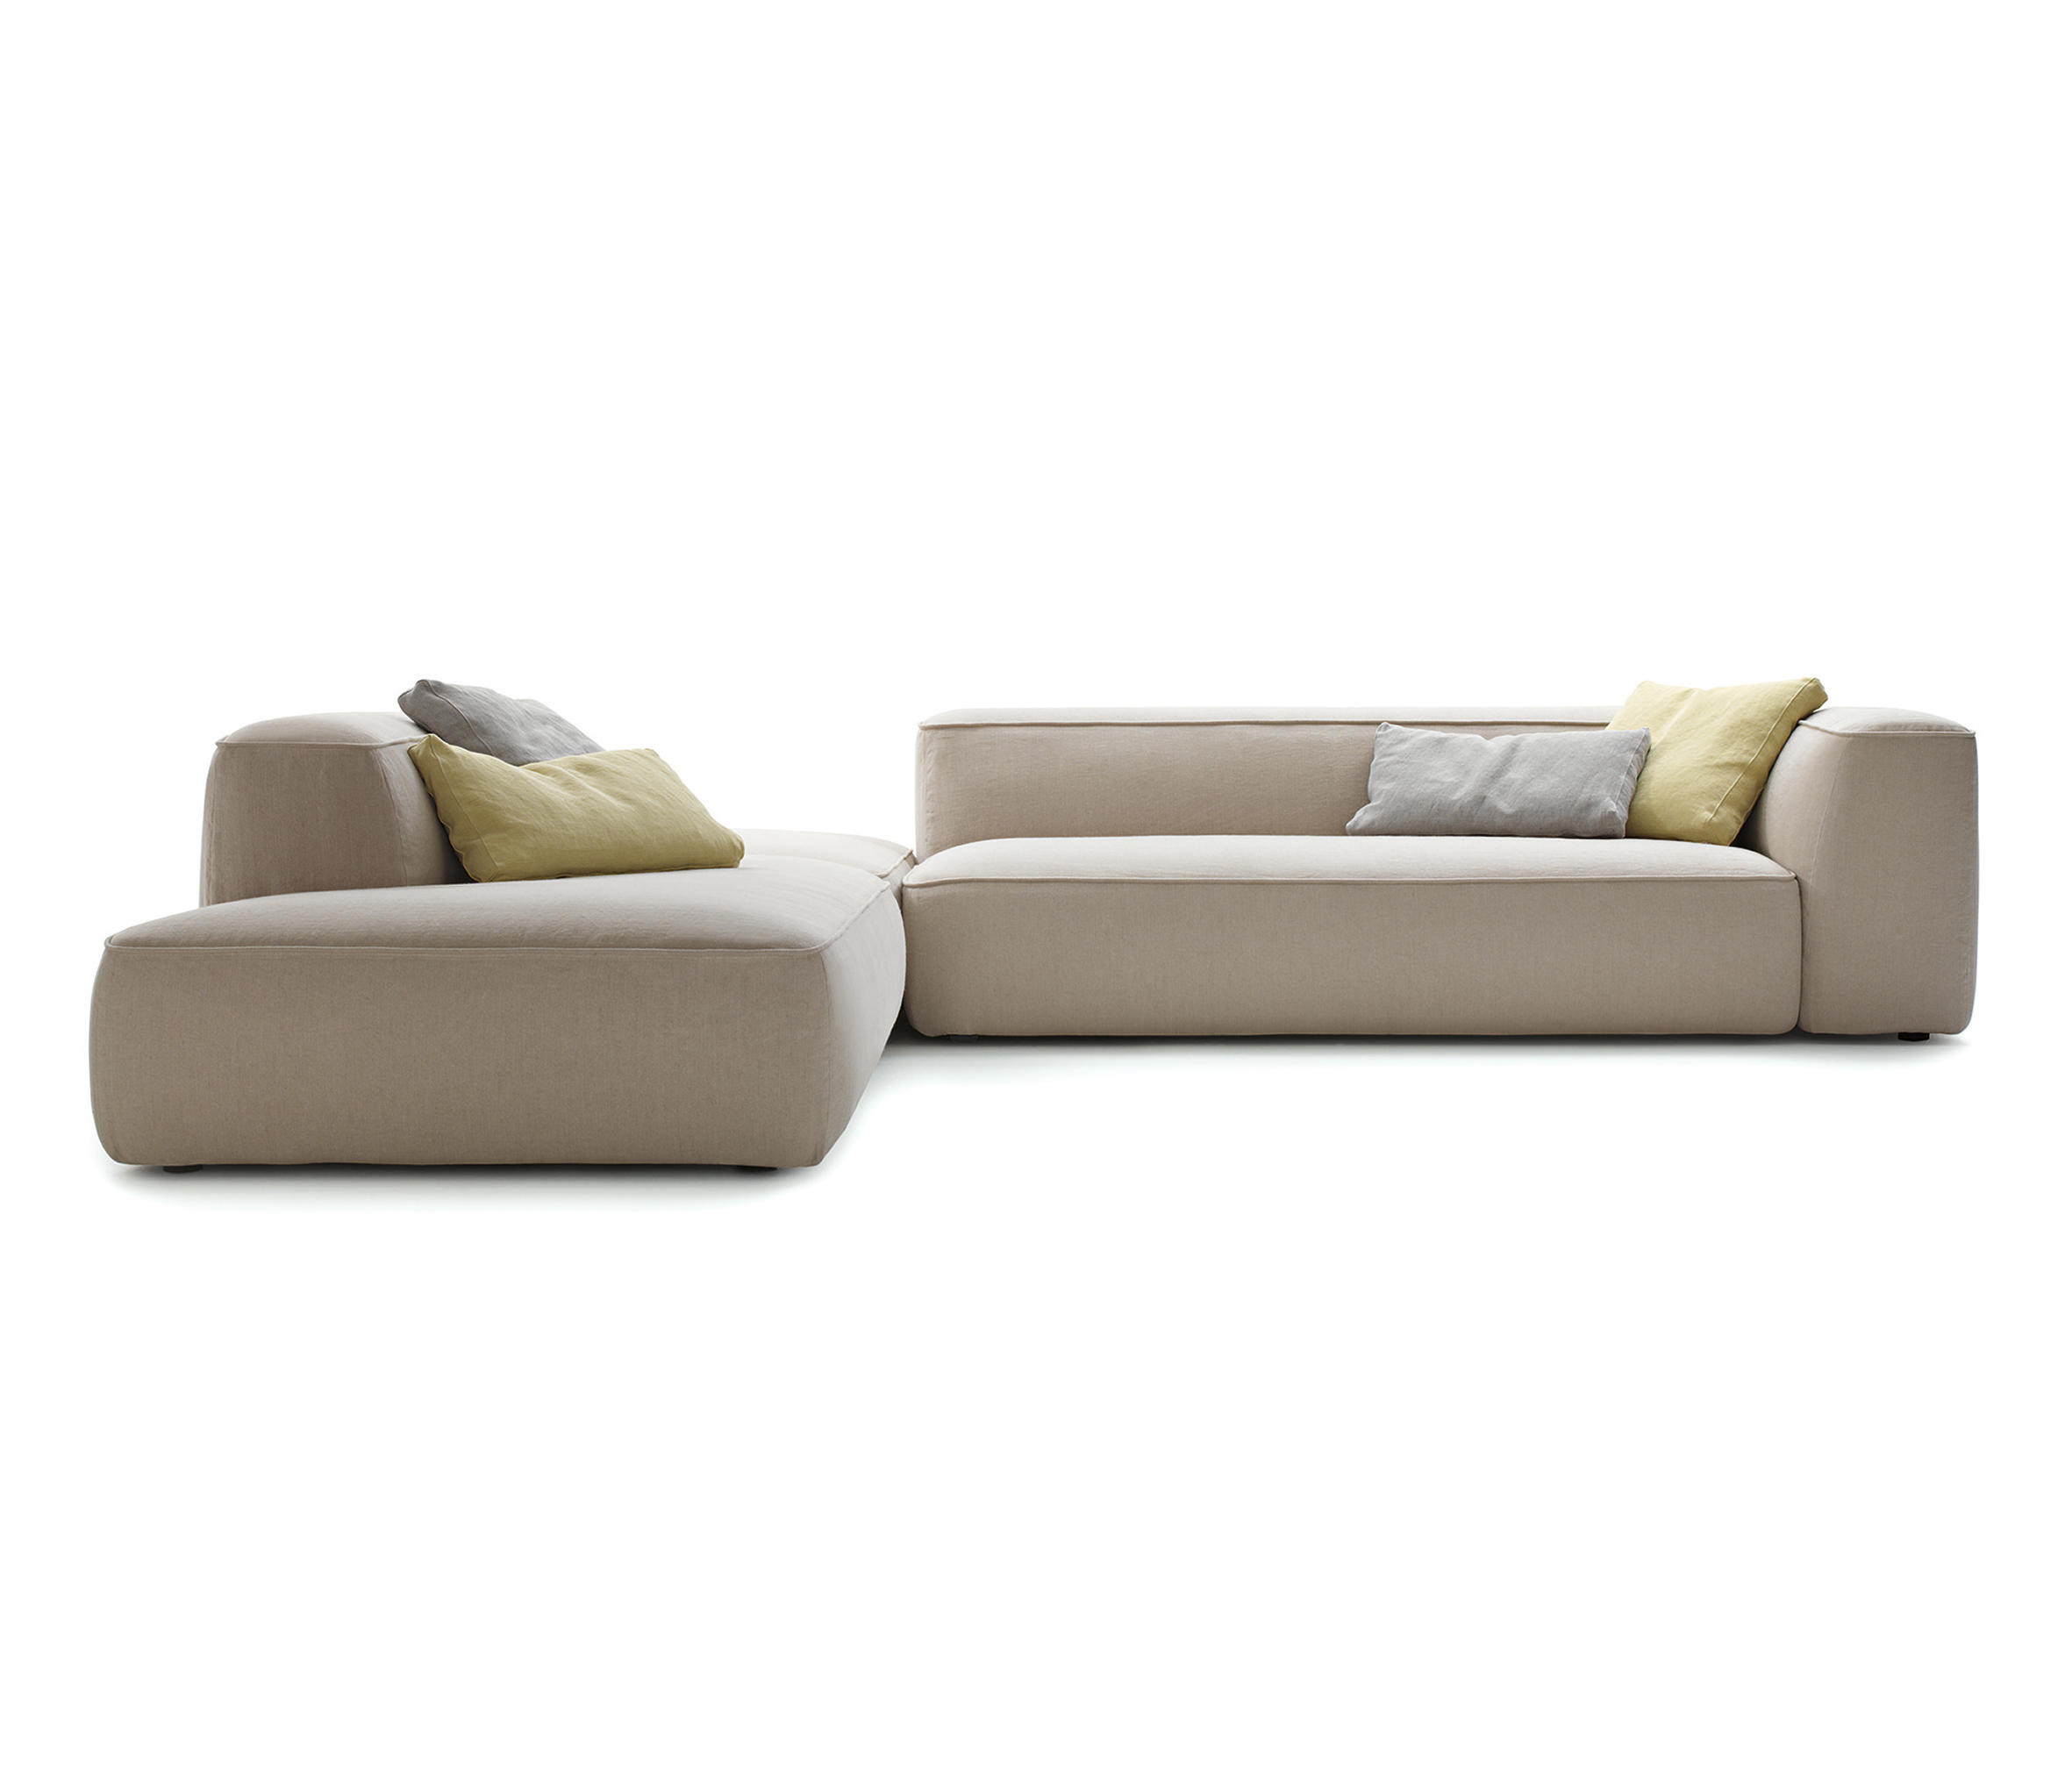 Cloud By Lema Sofas